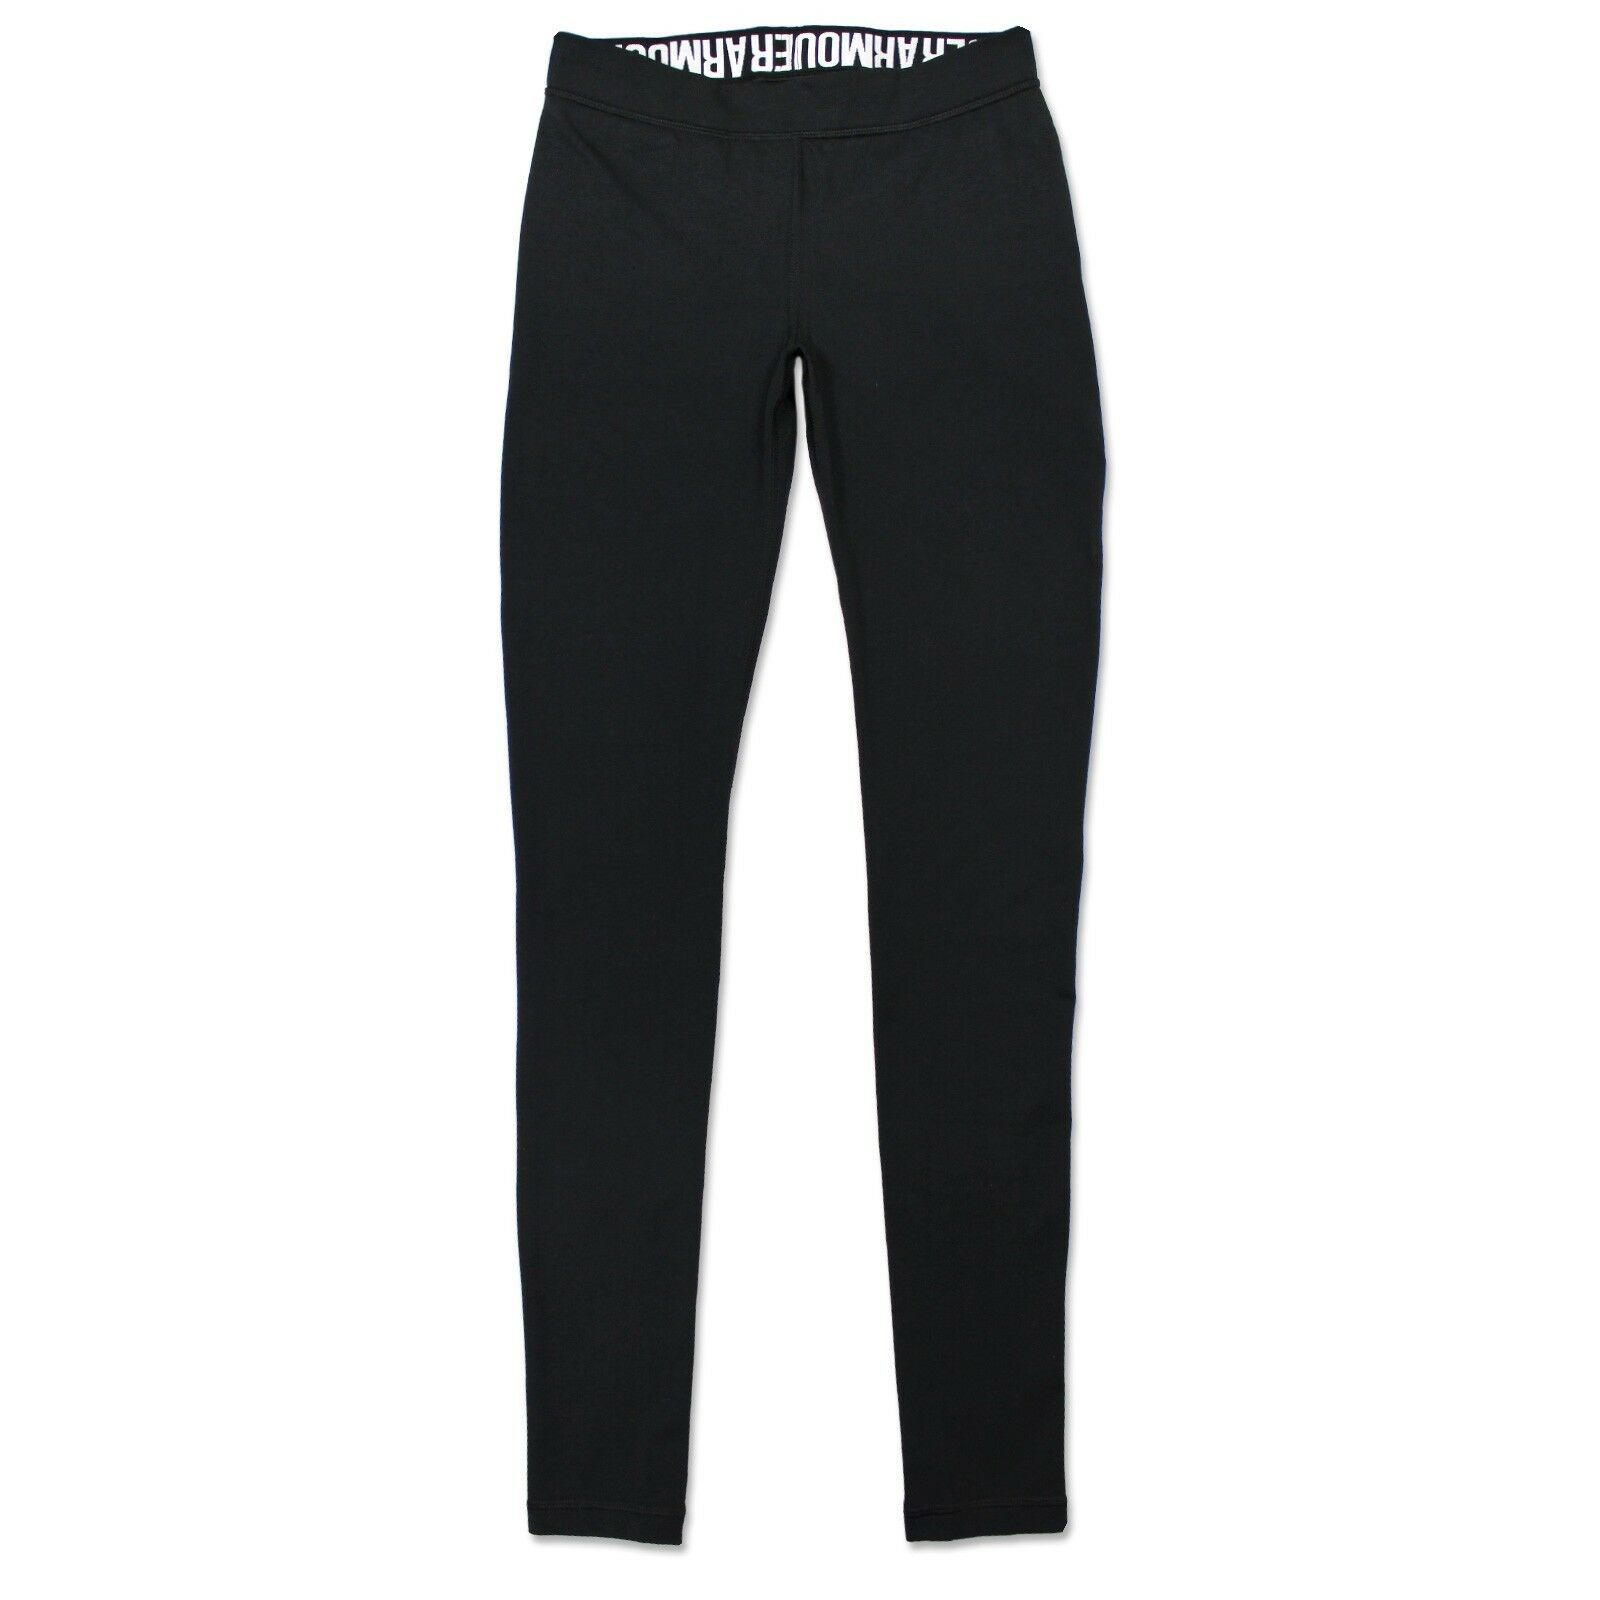 UNDER ARMOUR HEATGEAR FAVORITE LEGGING KOMPRESSIONSHOSE LAUF TIGHT SPORT HOSE  | Moderne Technologie